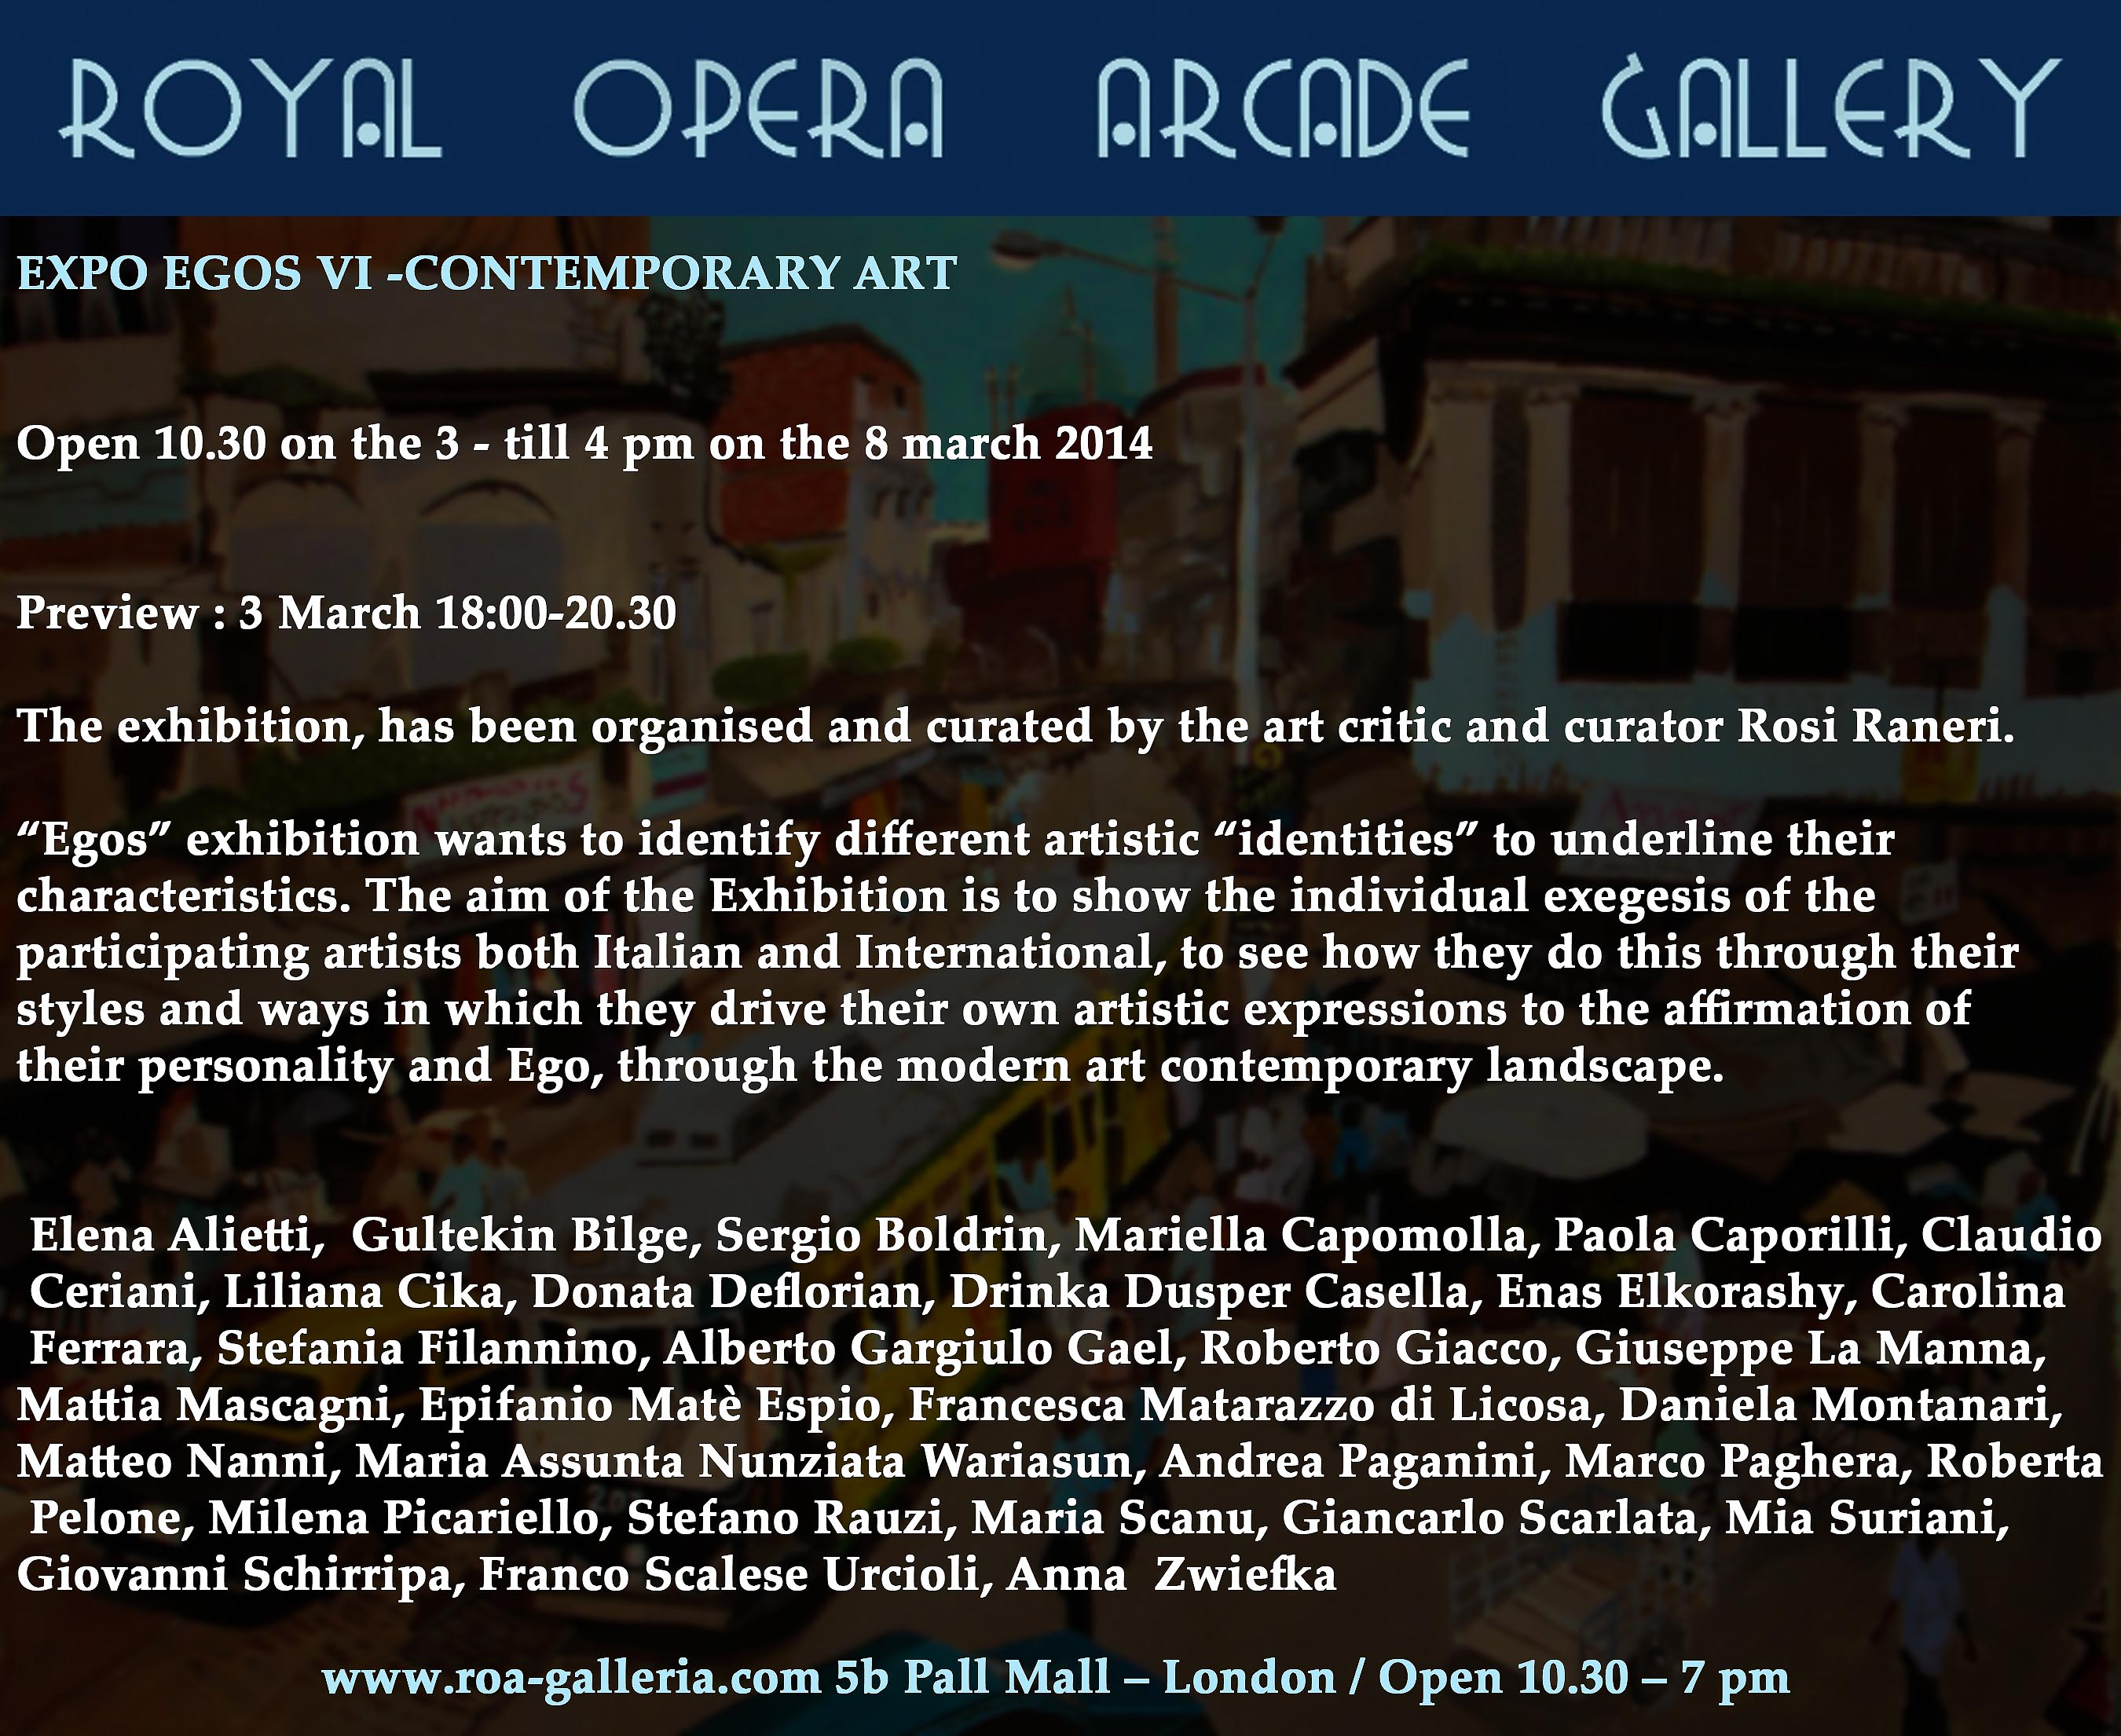 Royal Opera Arcade Gallery, London.